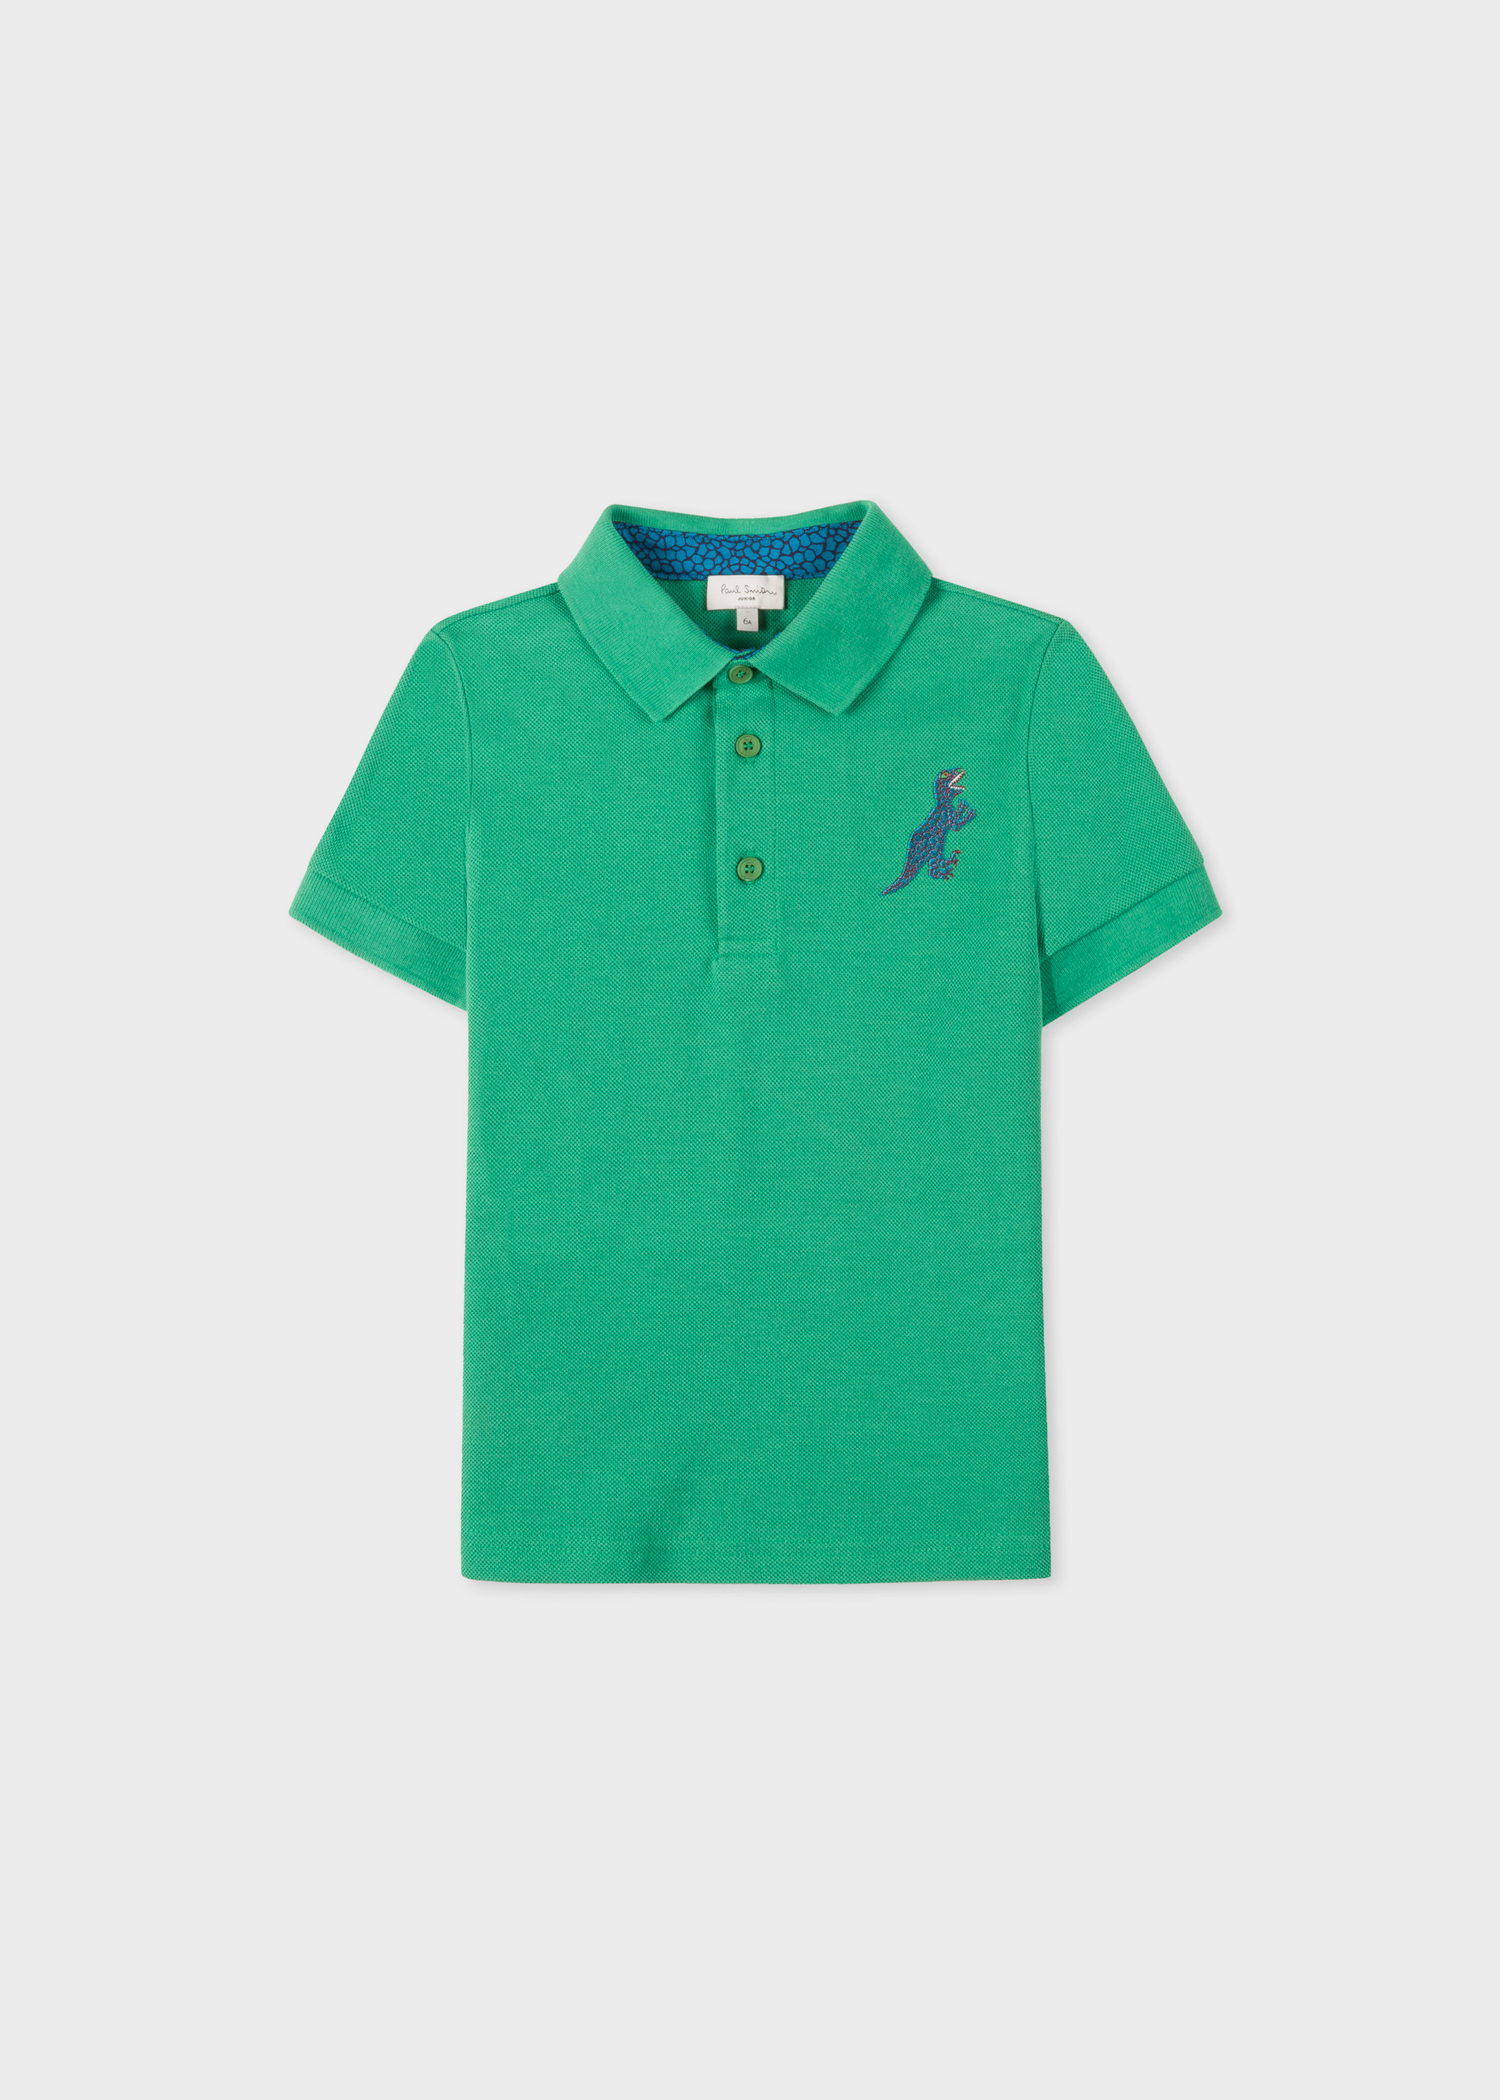 24ebc3ddd Boys  2-16 Years Green  Dino  Polo Shirt - Paul Smith Asia